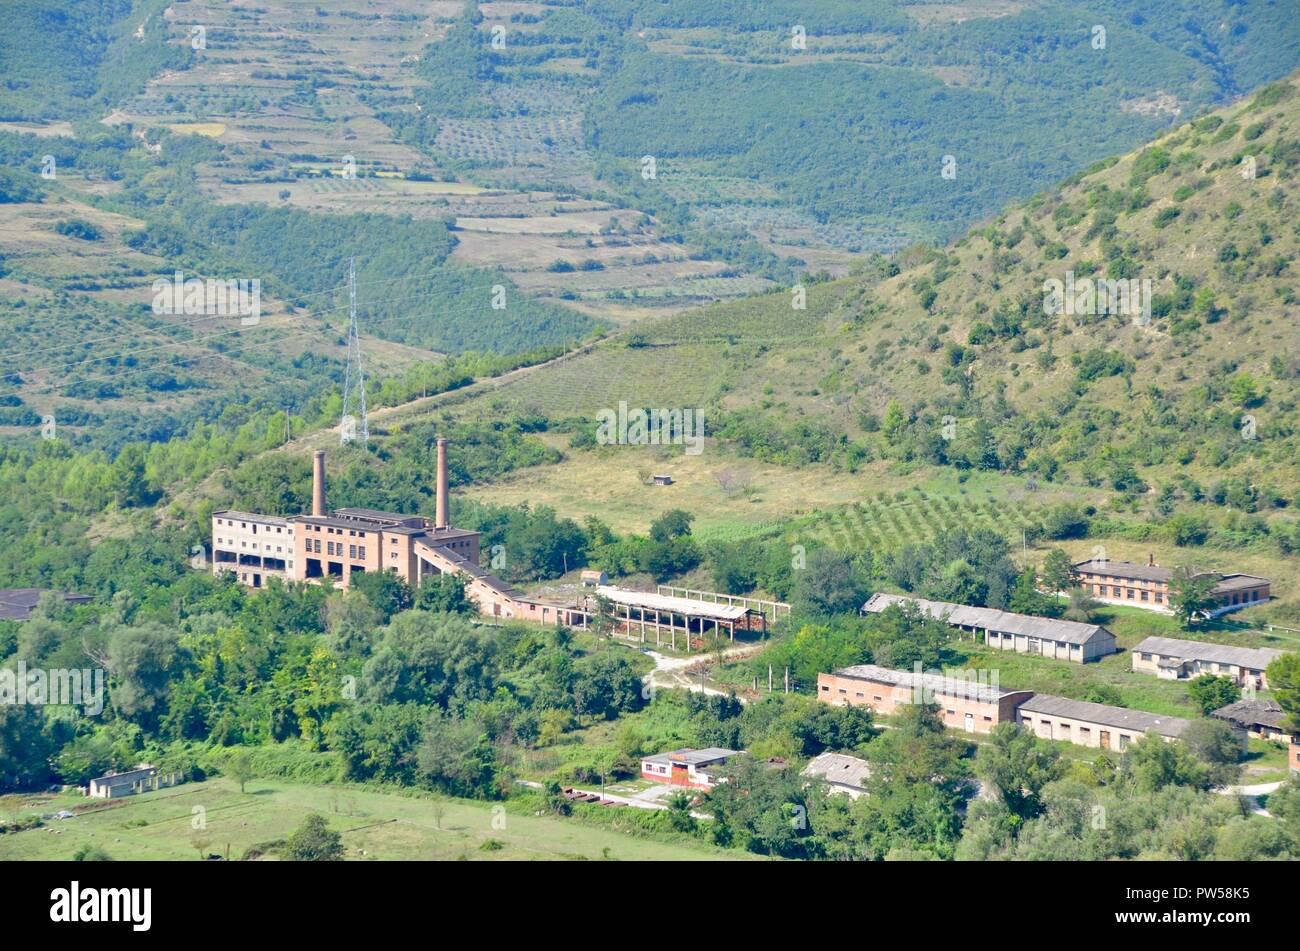 the disused armaments arms and gun factory complex at polican albania, once secret and unapproachable - Stock Image